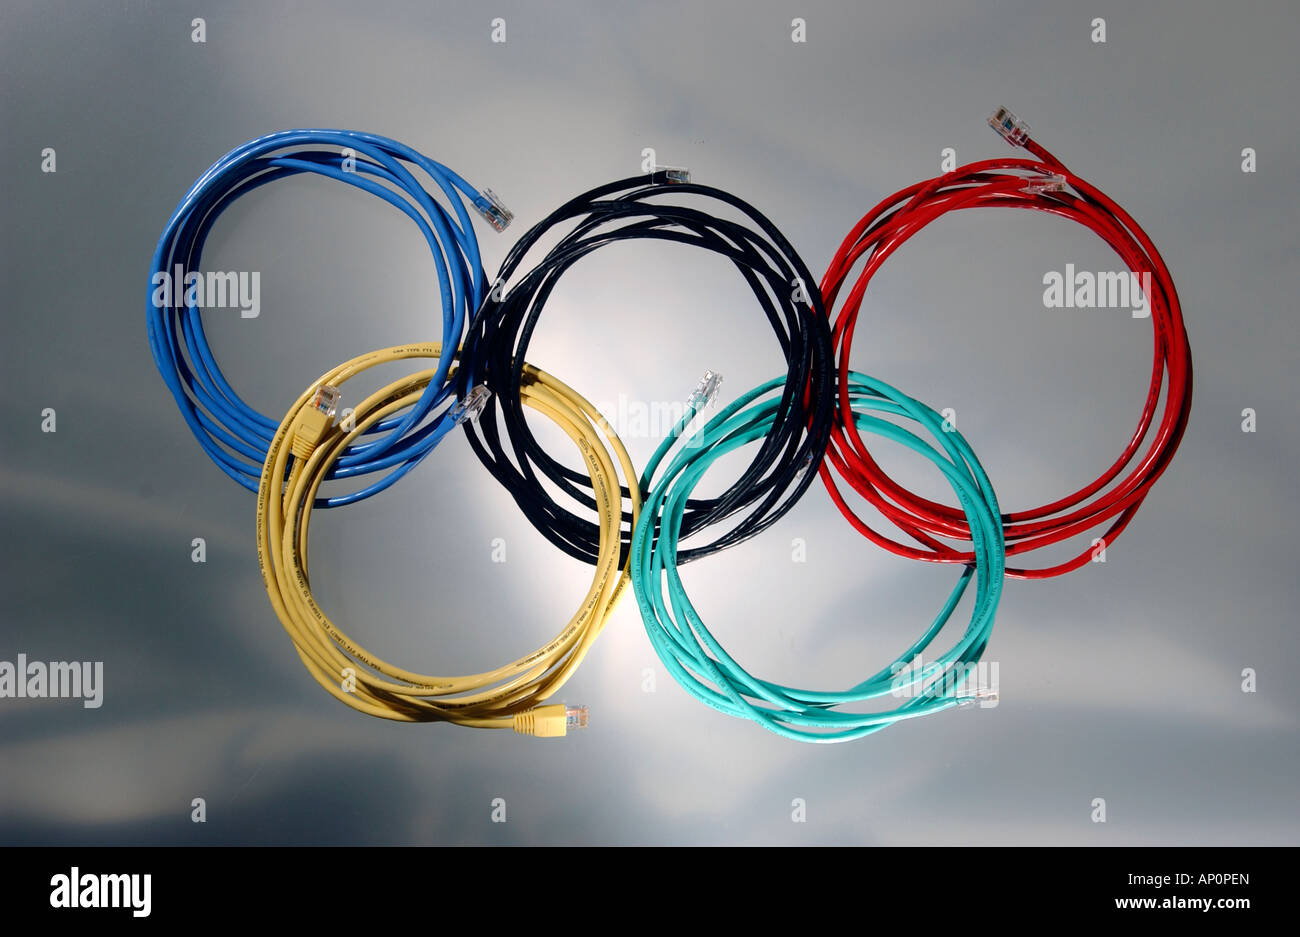 Ethernet cables forming shape of Olympic rings - Stock Image